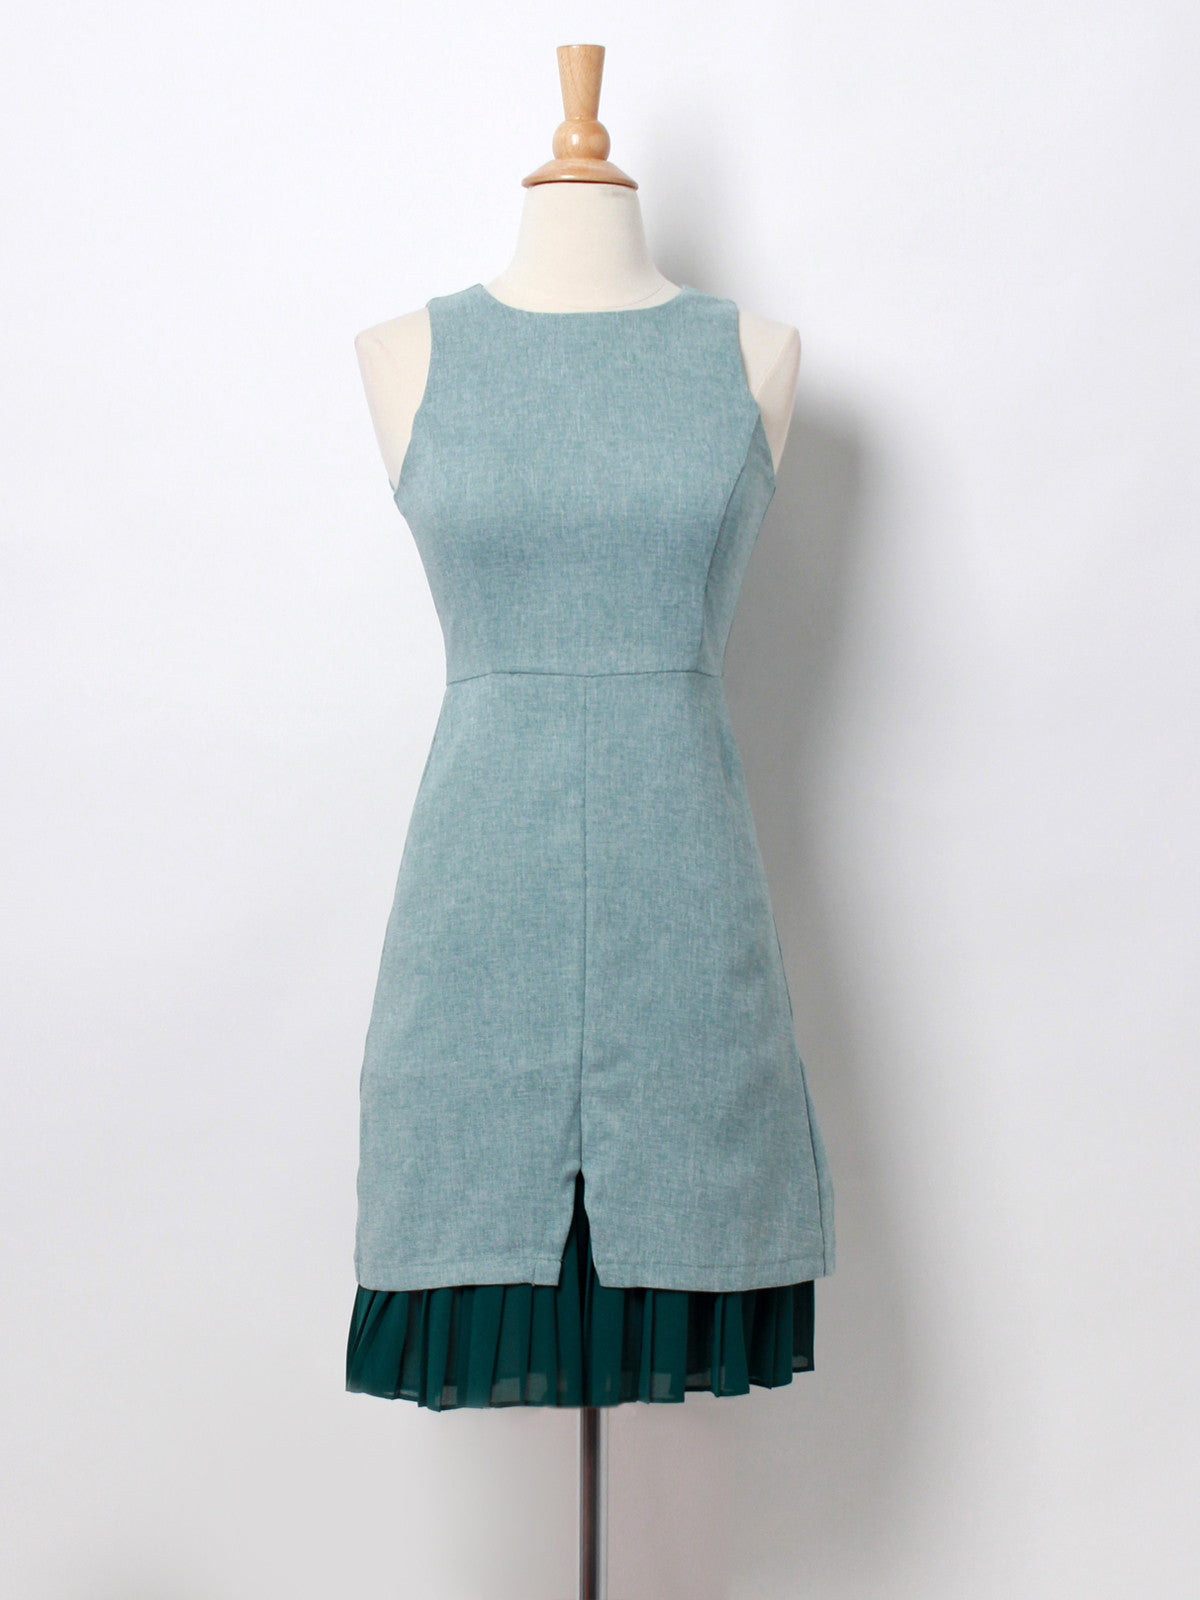 Veronica V Slit Chiffon Hem Shift Dress Jade